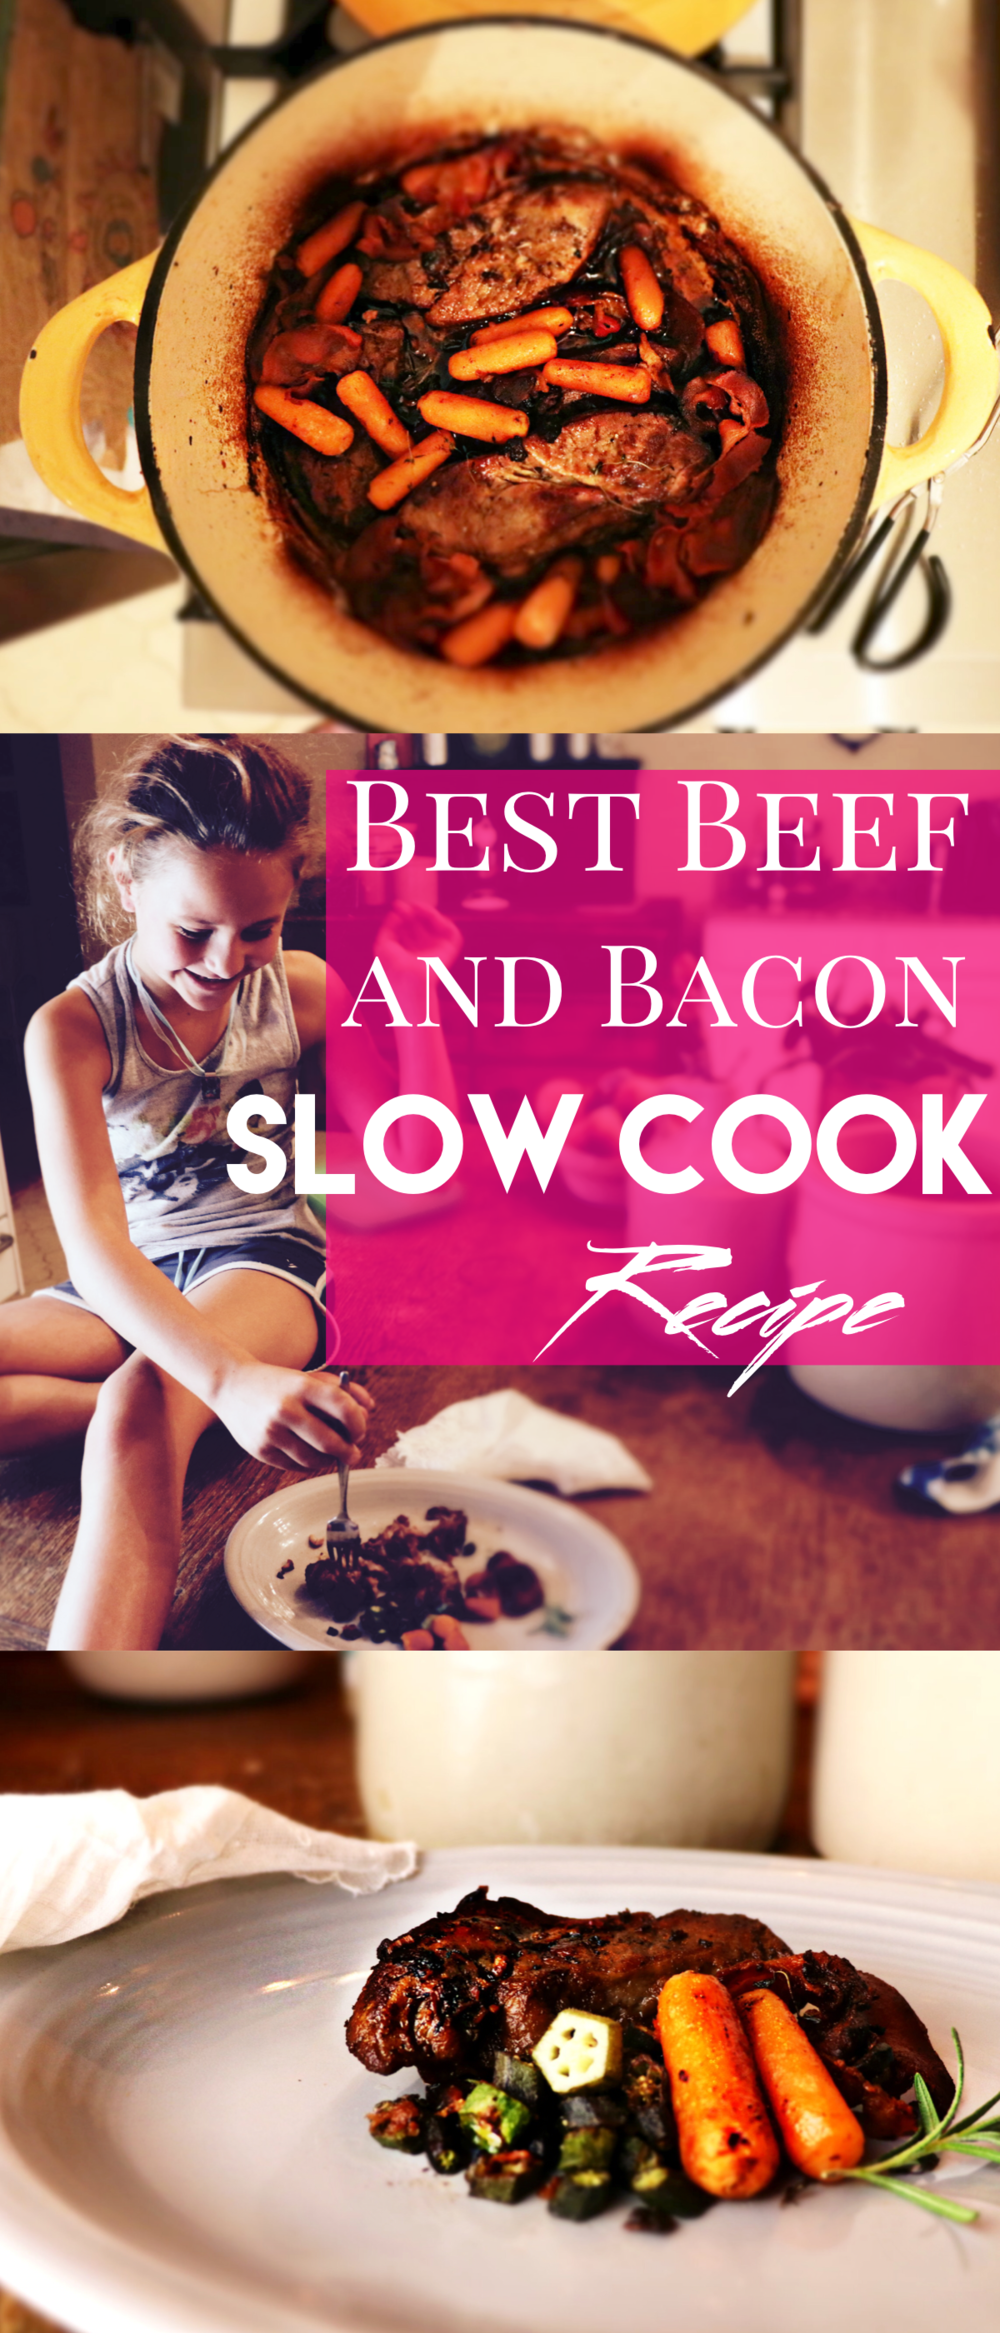 Beef and Bacon Slow Cook